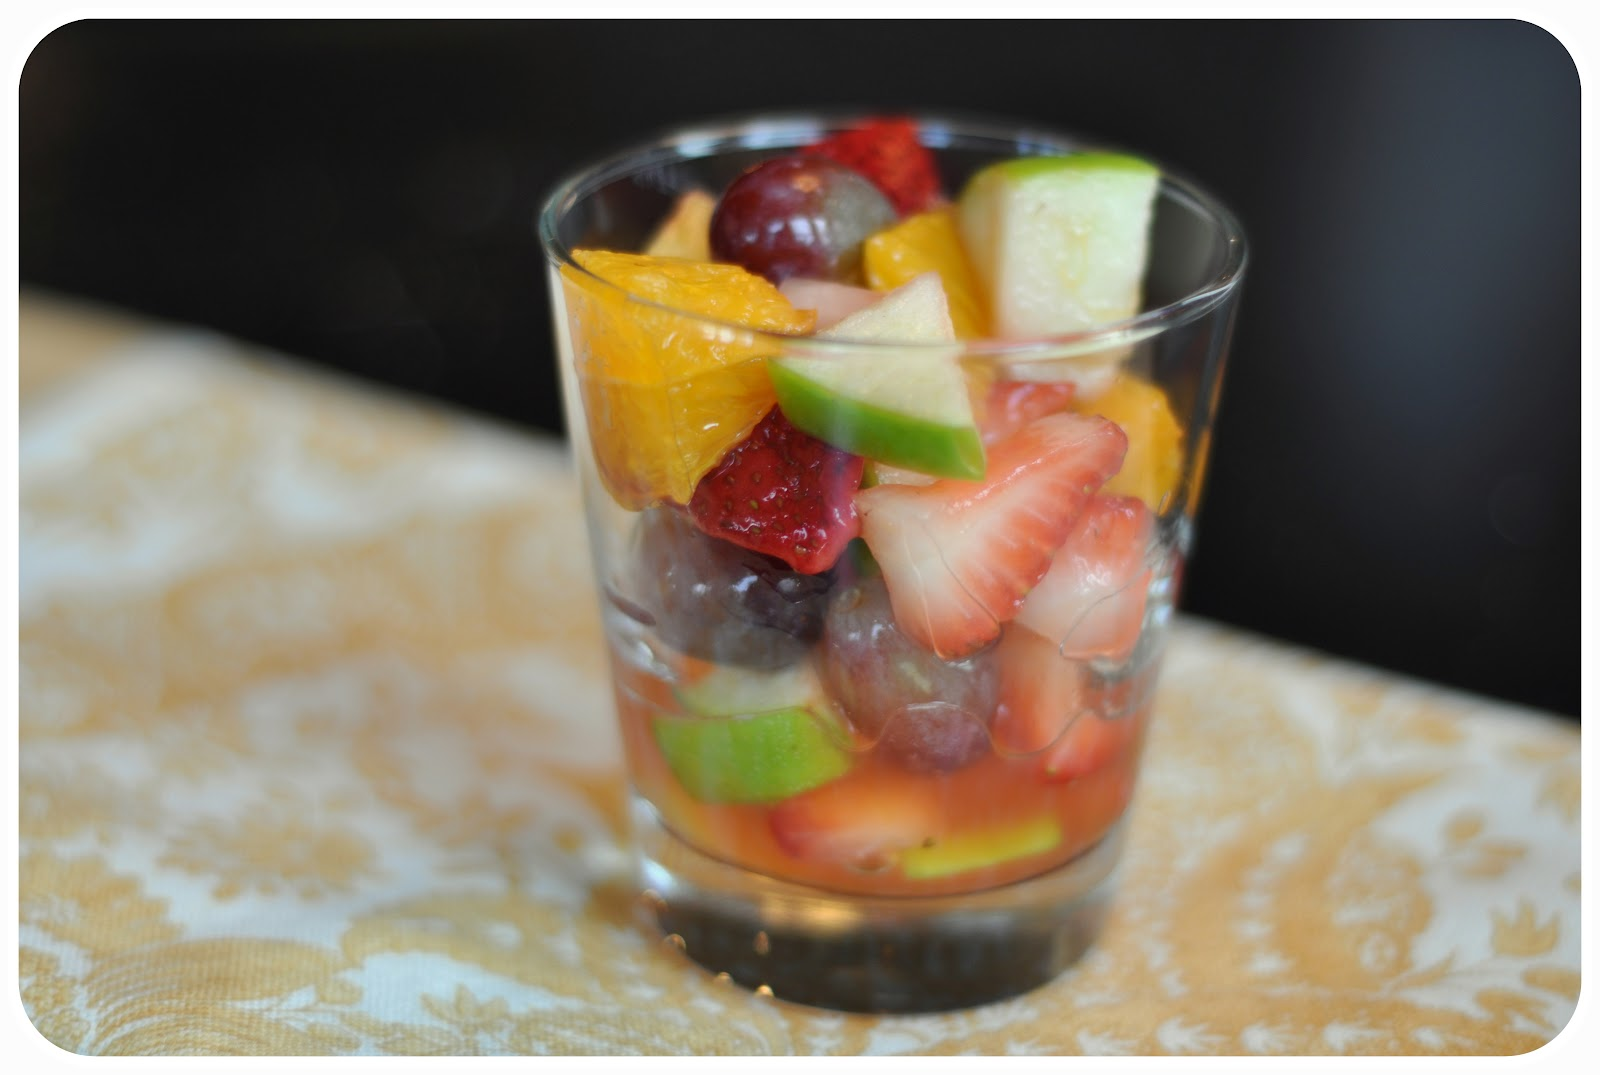 ... South Sweets: Deep South Eats: Fruit Salad with Honey Lime Dressing